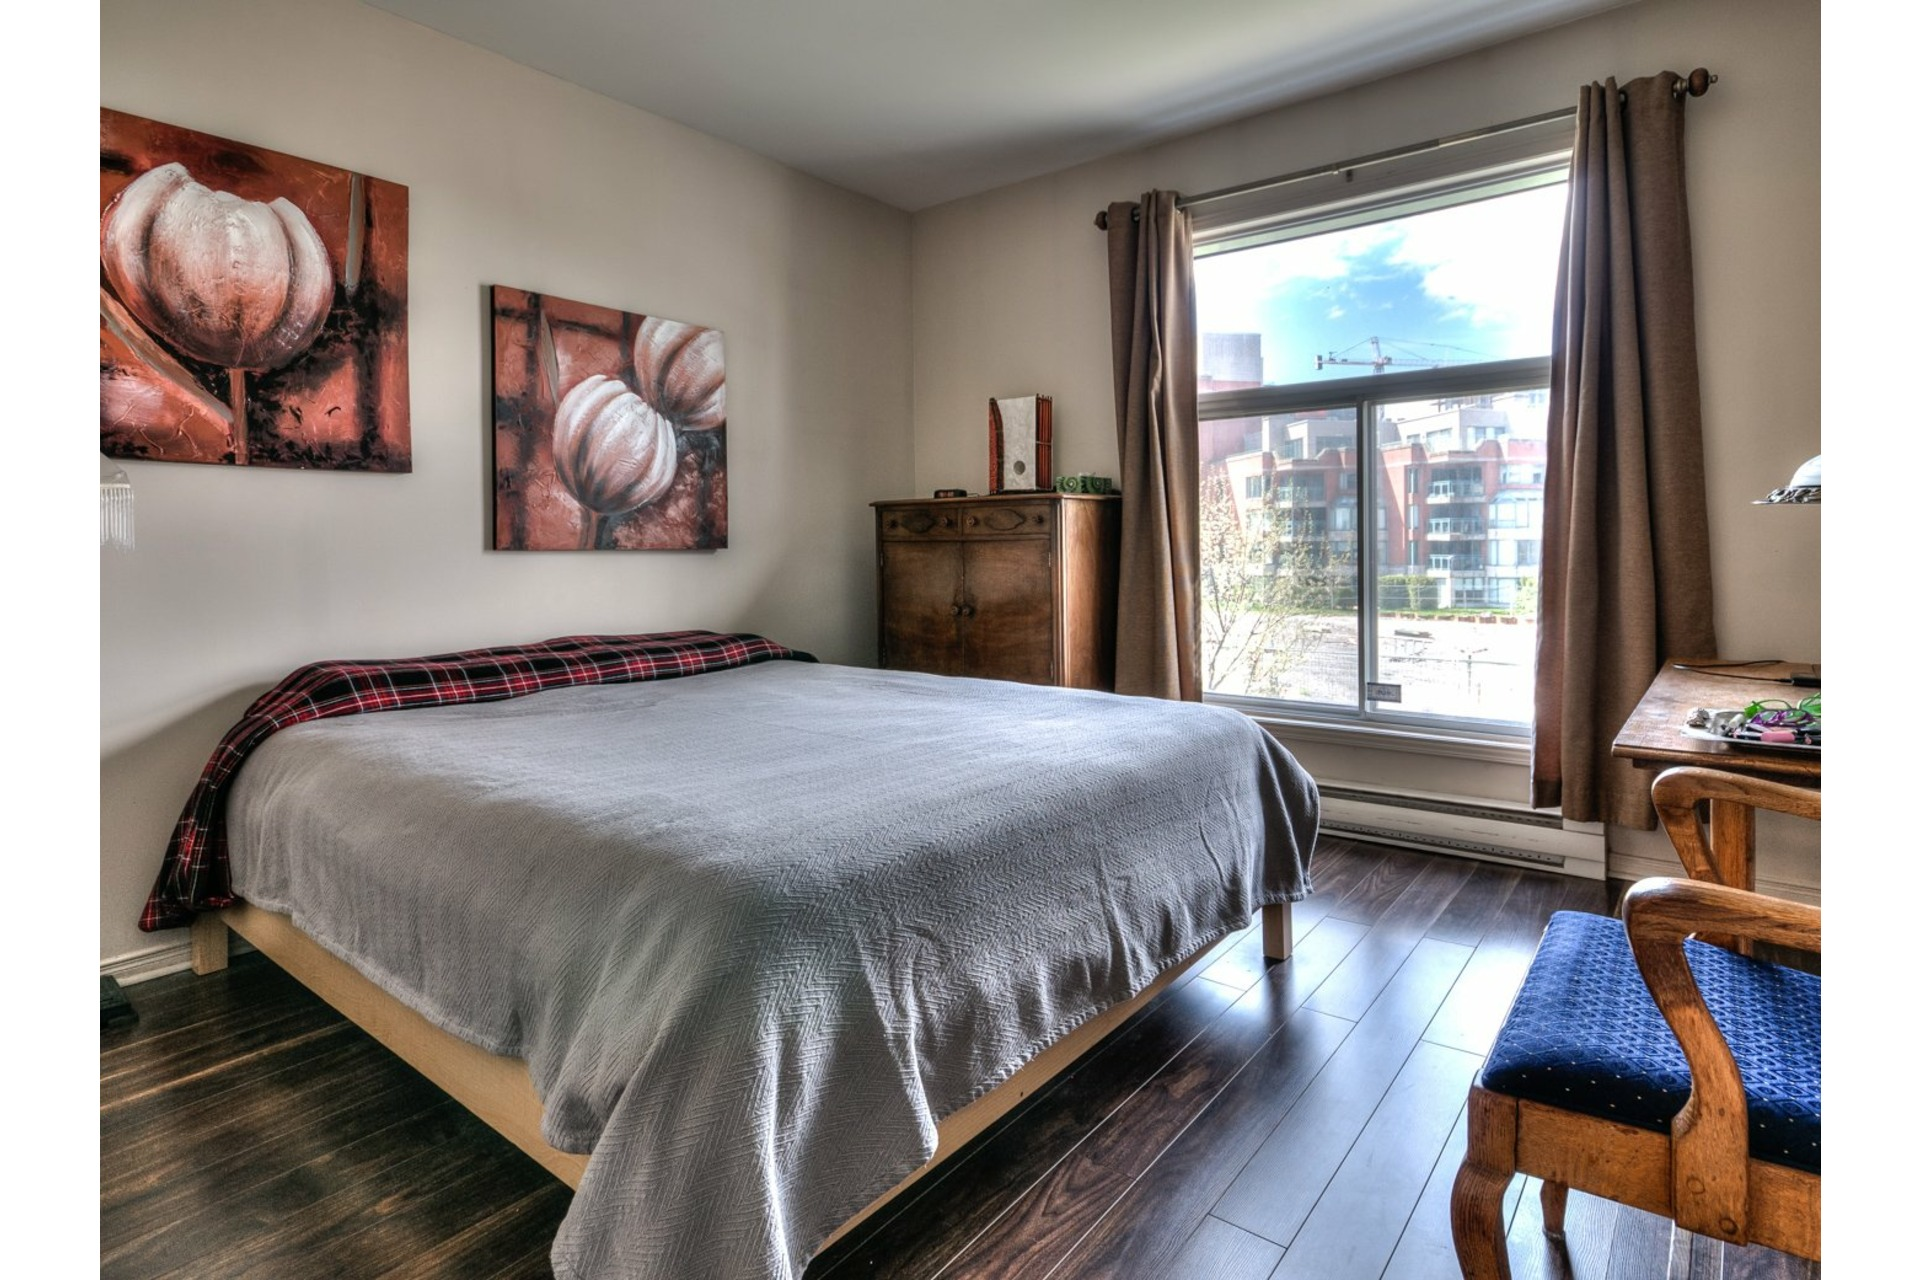 image 15 - Apartment For sale Brossard - 5 rooms